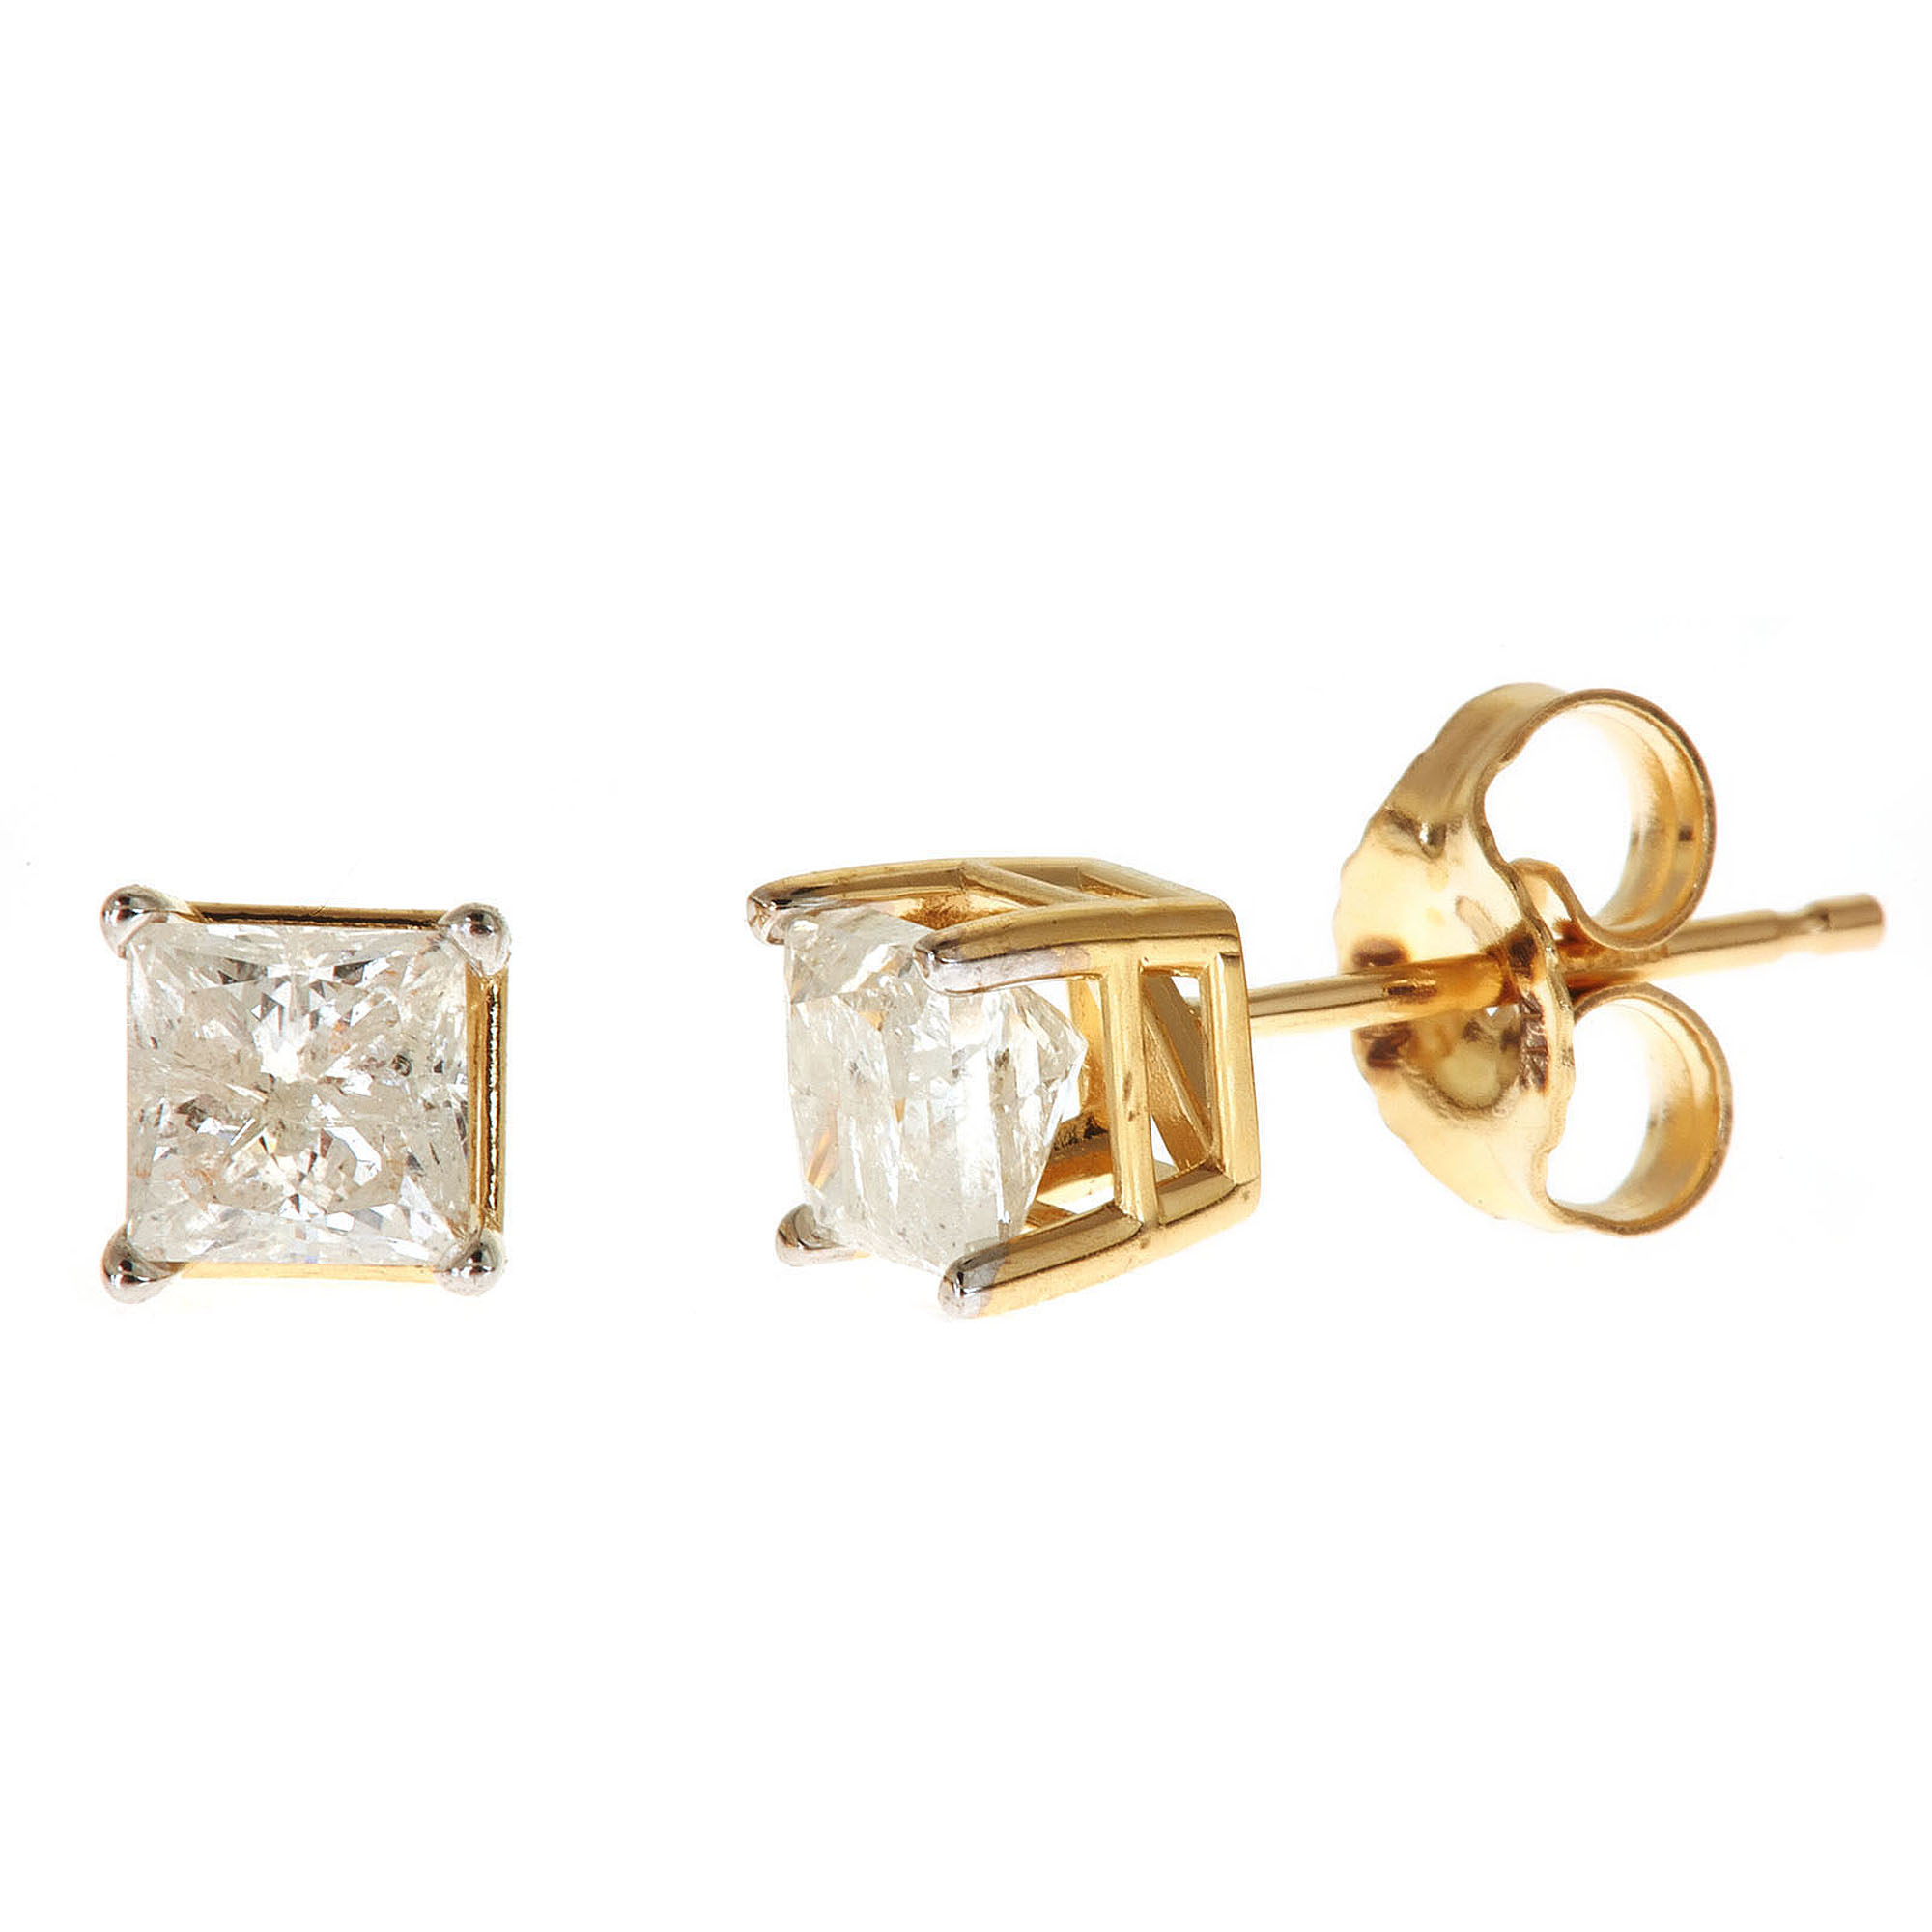 1 Carat T W Princess White Diamond 14kt Yellow Gold Stud Earrings Igl Certified